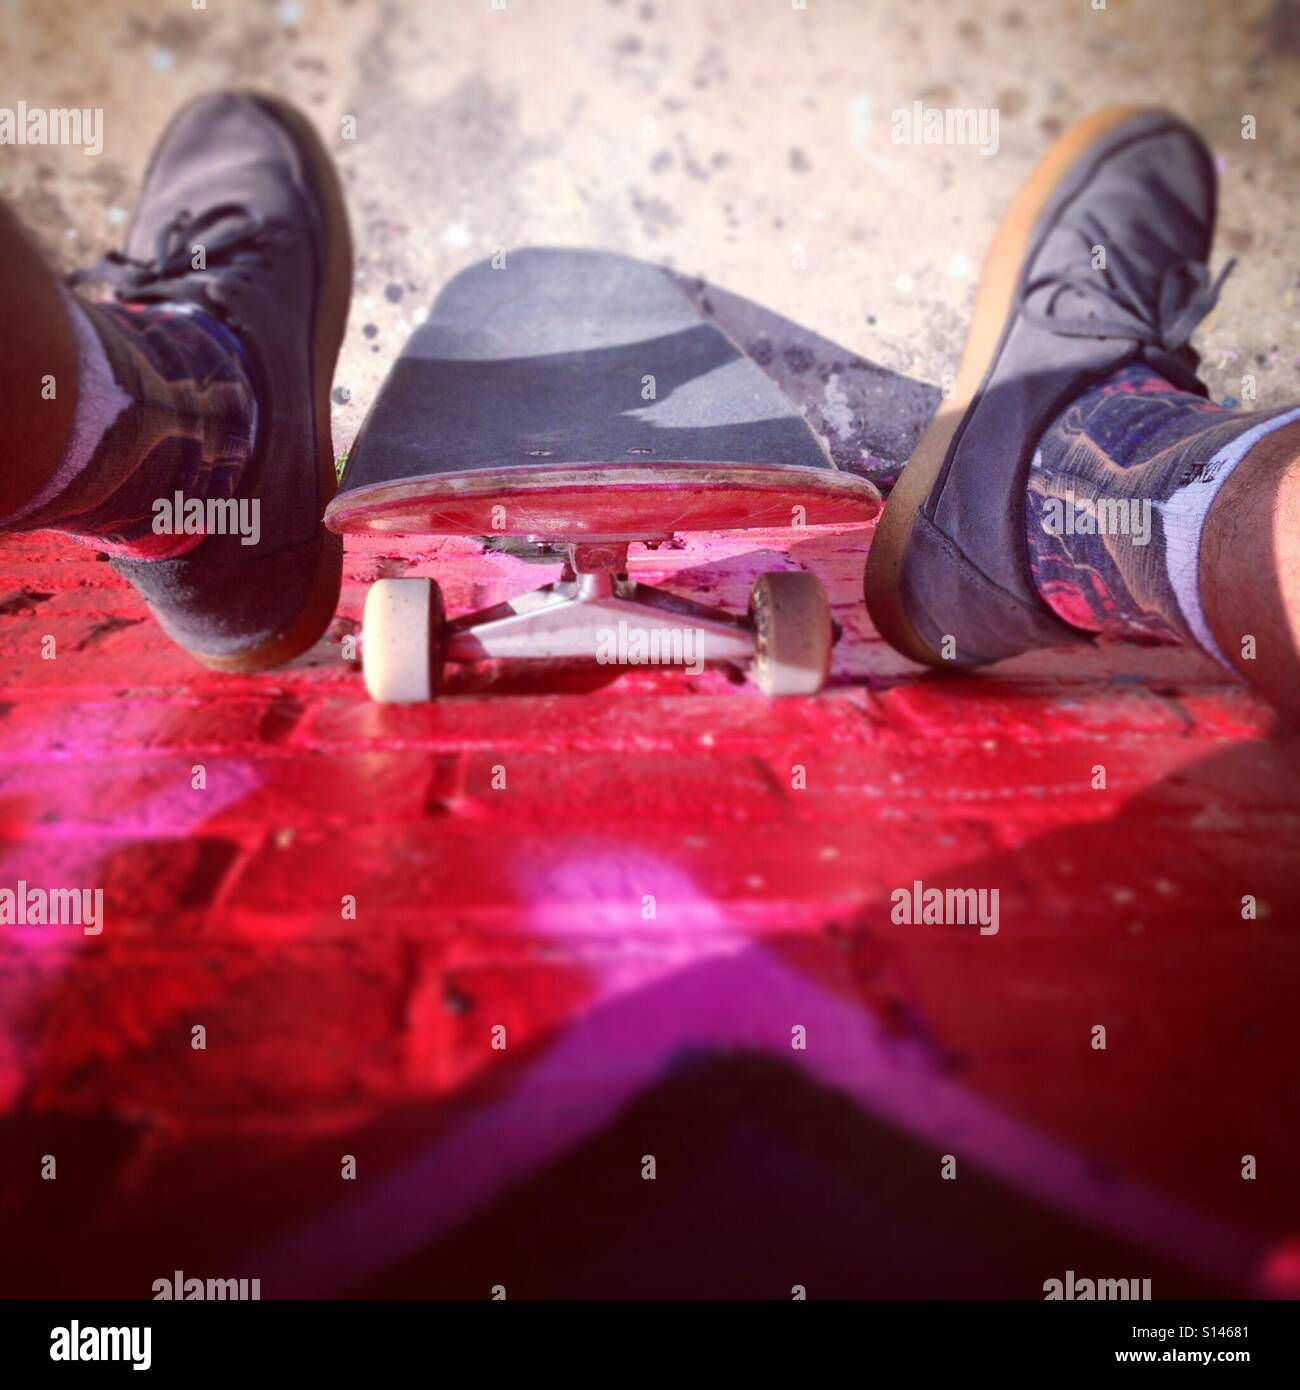 Sitting on a wall at Stockwell Skatepark - London. - Stock Image